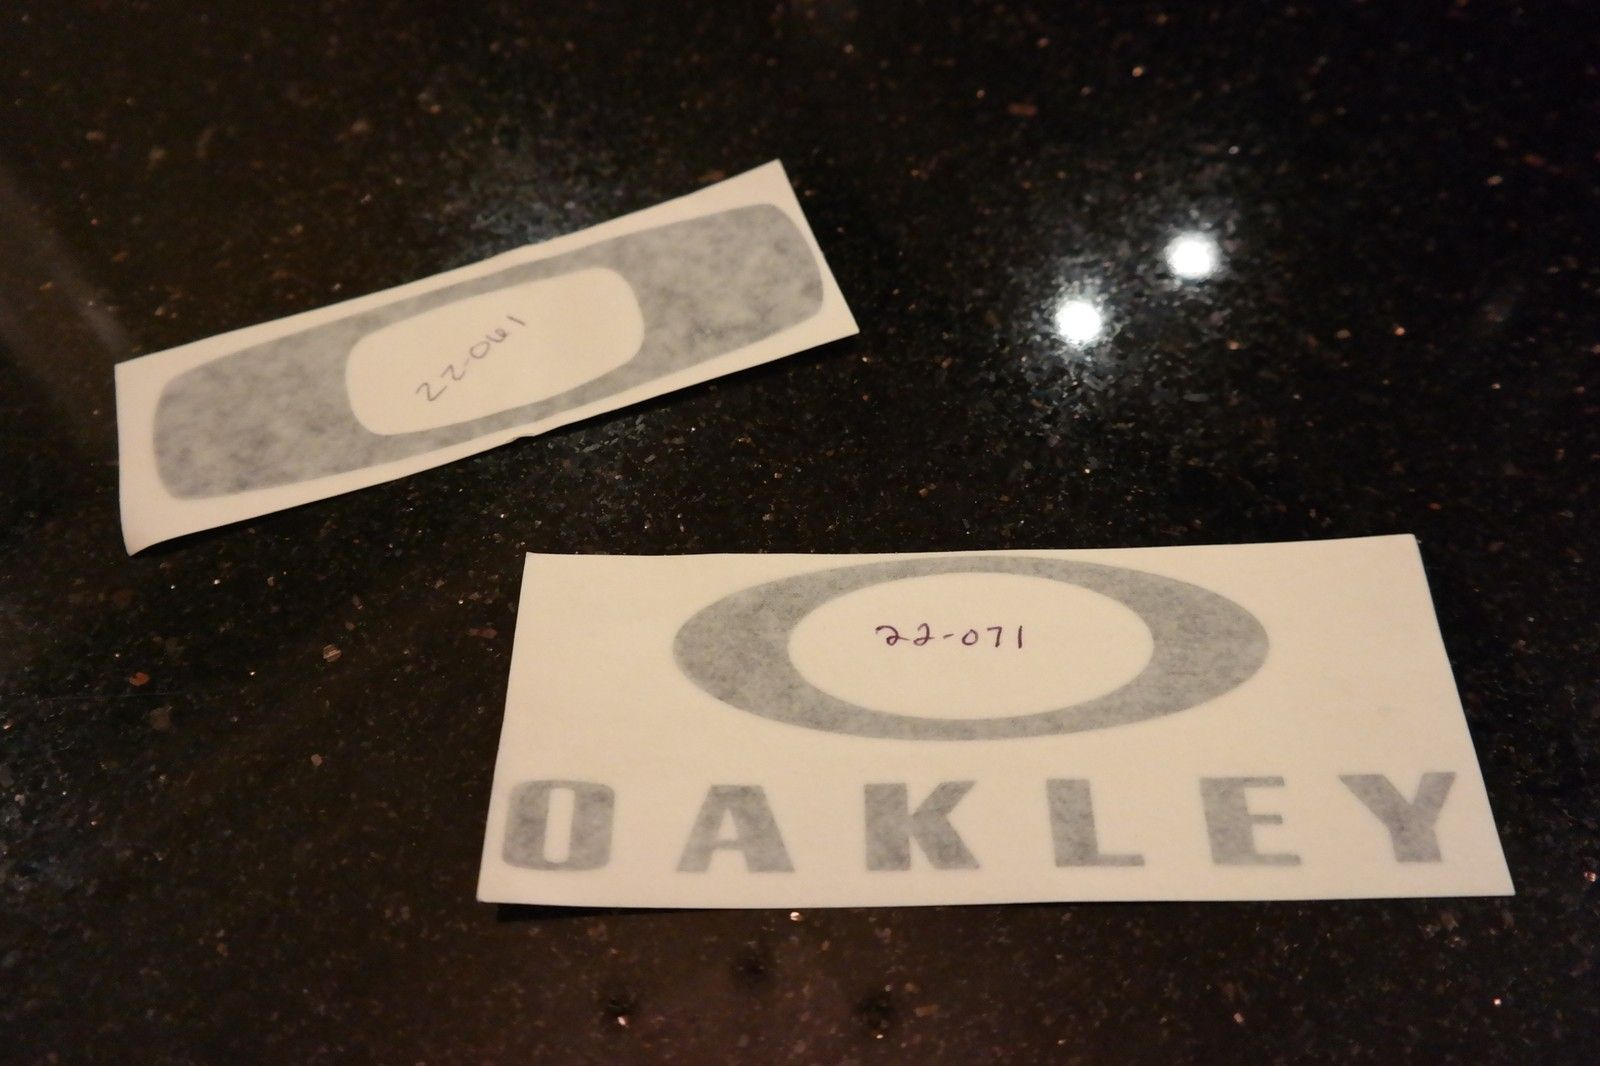 Want something you can't go out and buy?  OAKLEY V.I.P. polo, mf bag, golf balls and more. - SAM_1685.jpg